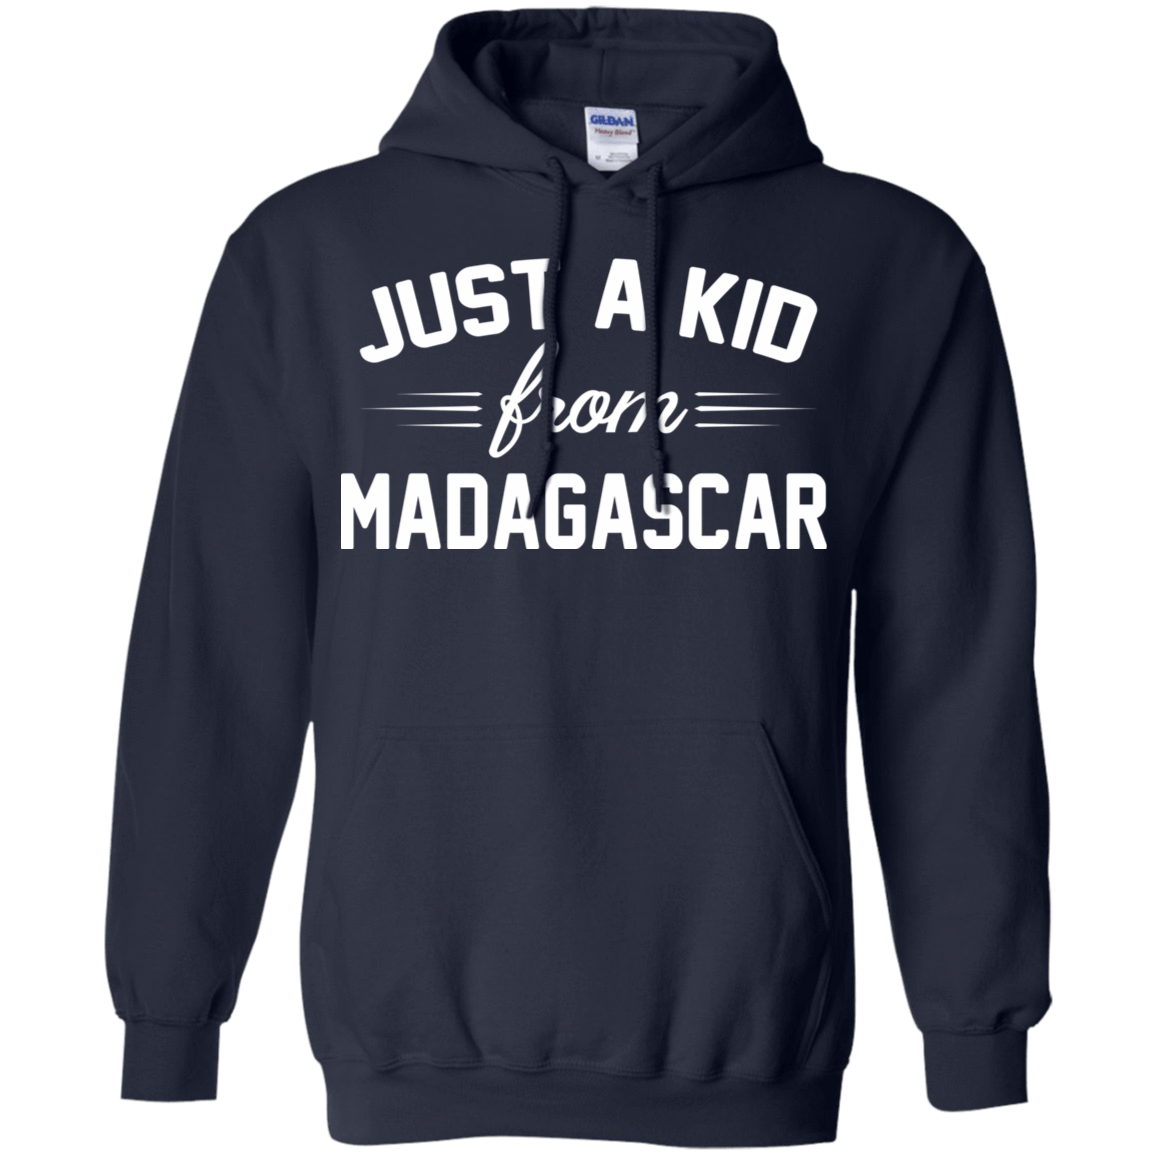 Just a Kid Store | Madagascar T-Shirts, Hoodie, Tank 541-4742-72091600-23135 - Tee Ript